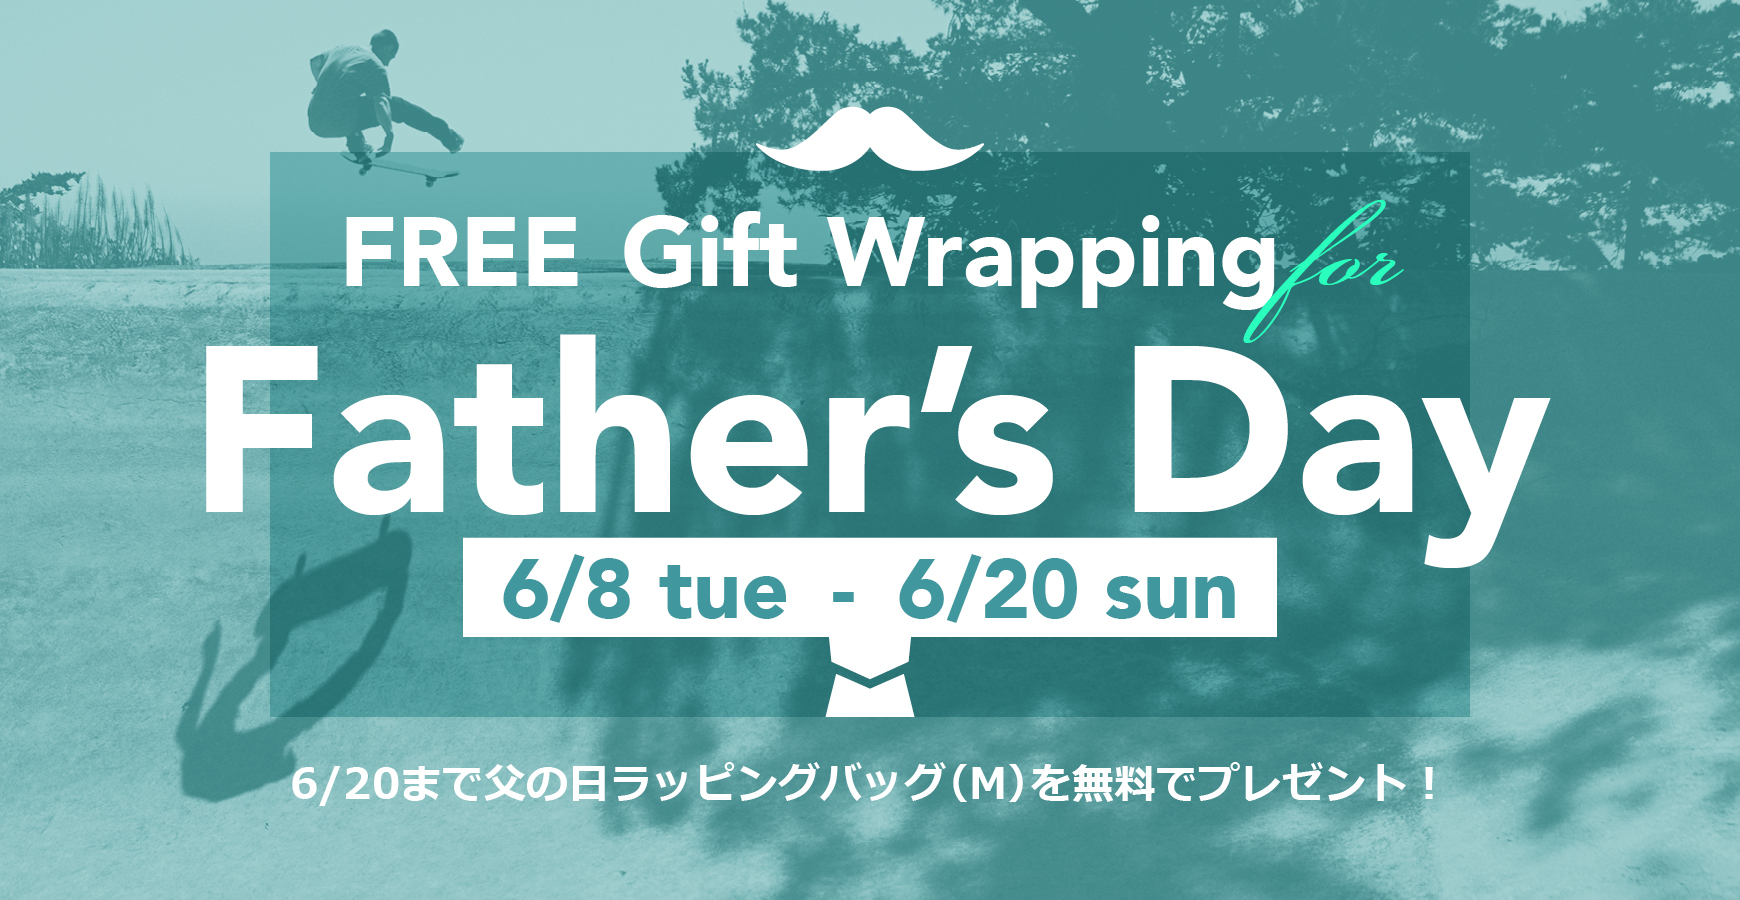 Free Gift Wrapping for father's Day